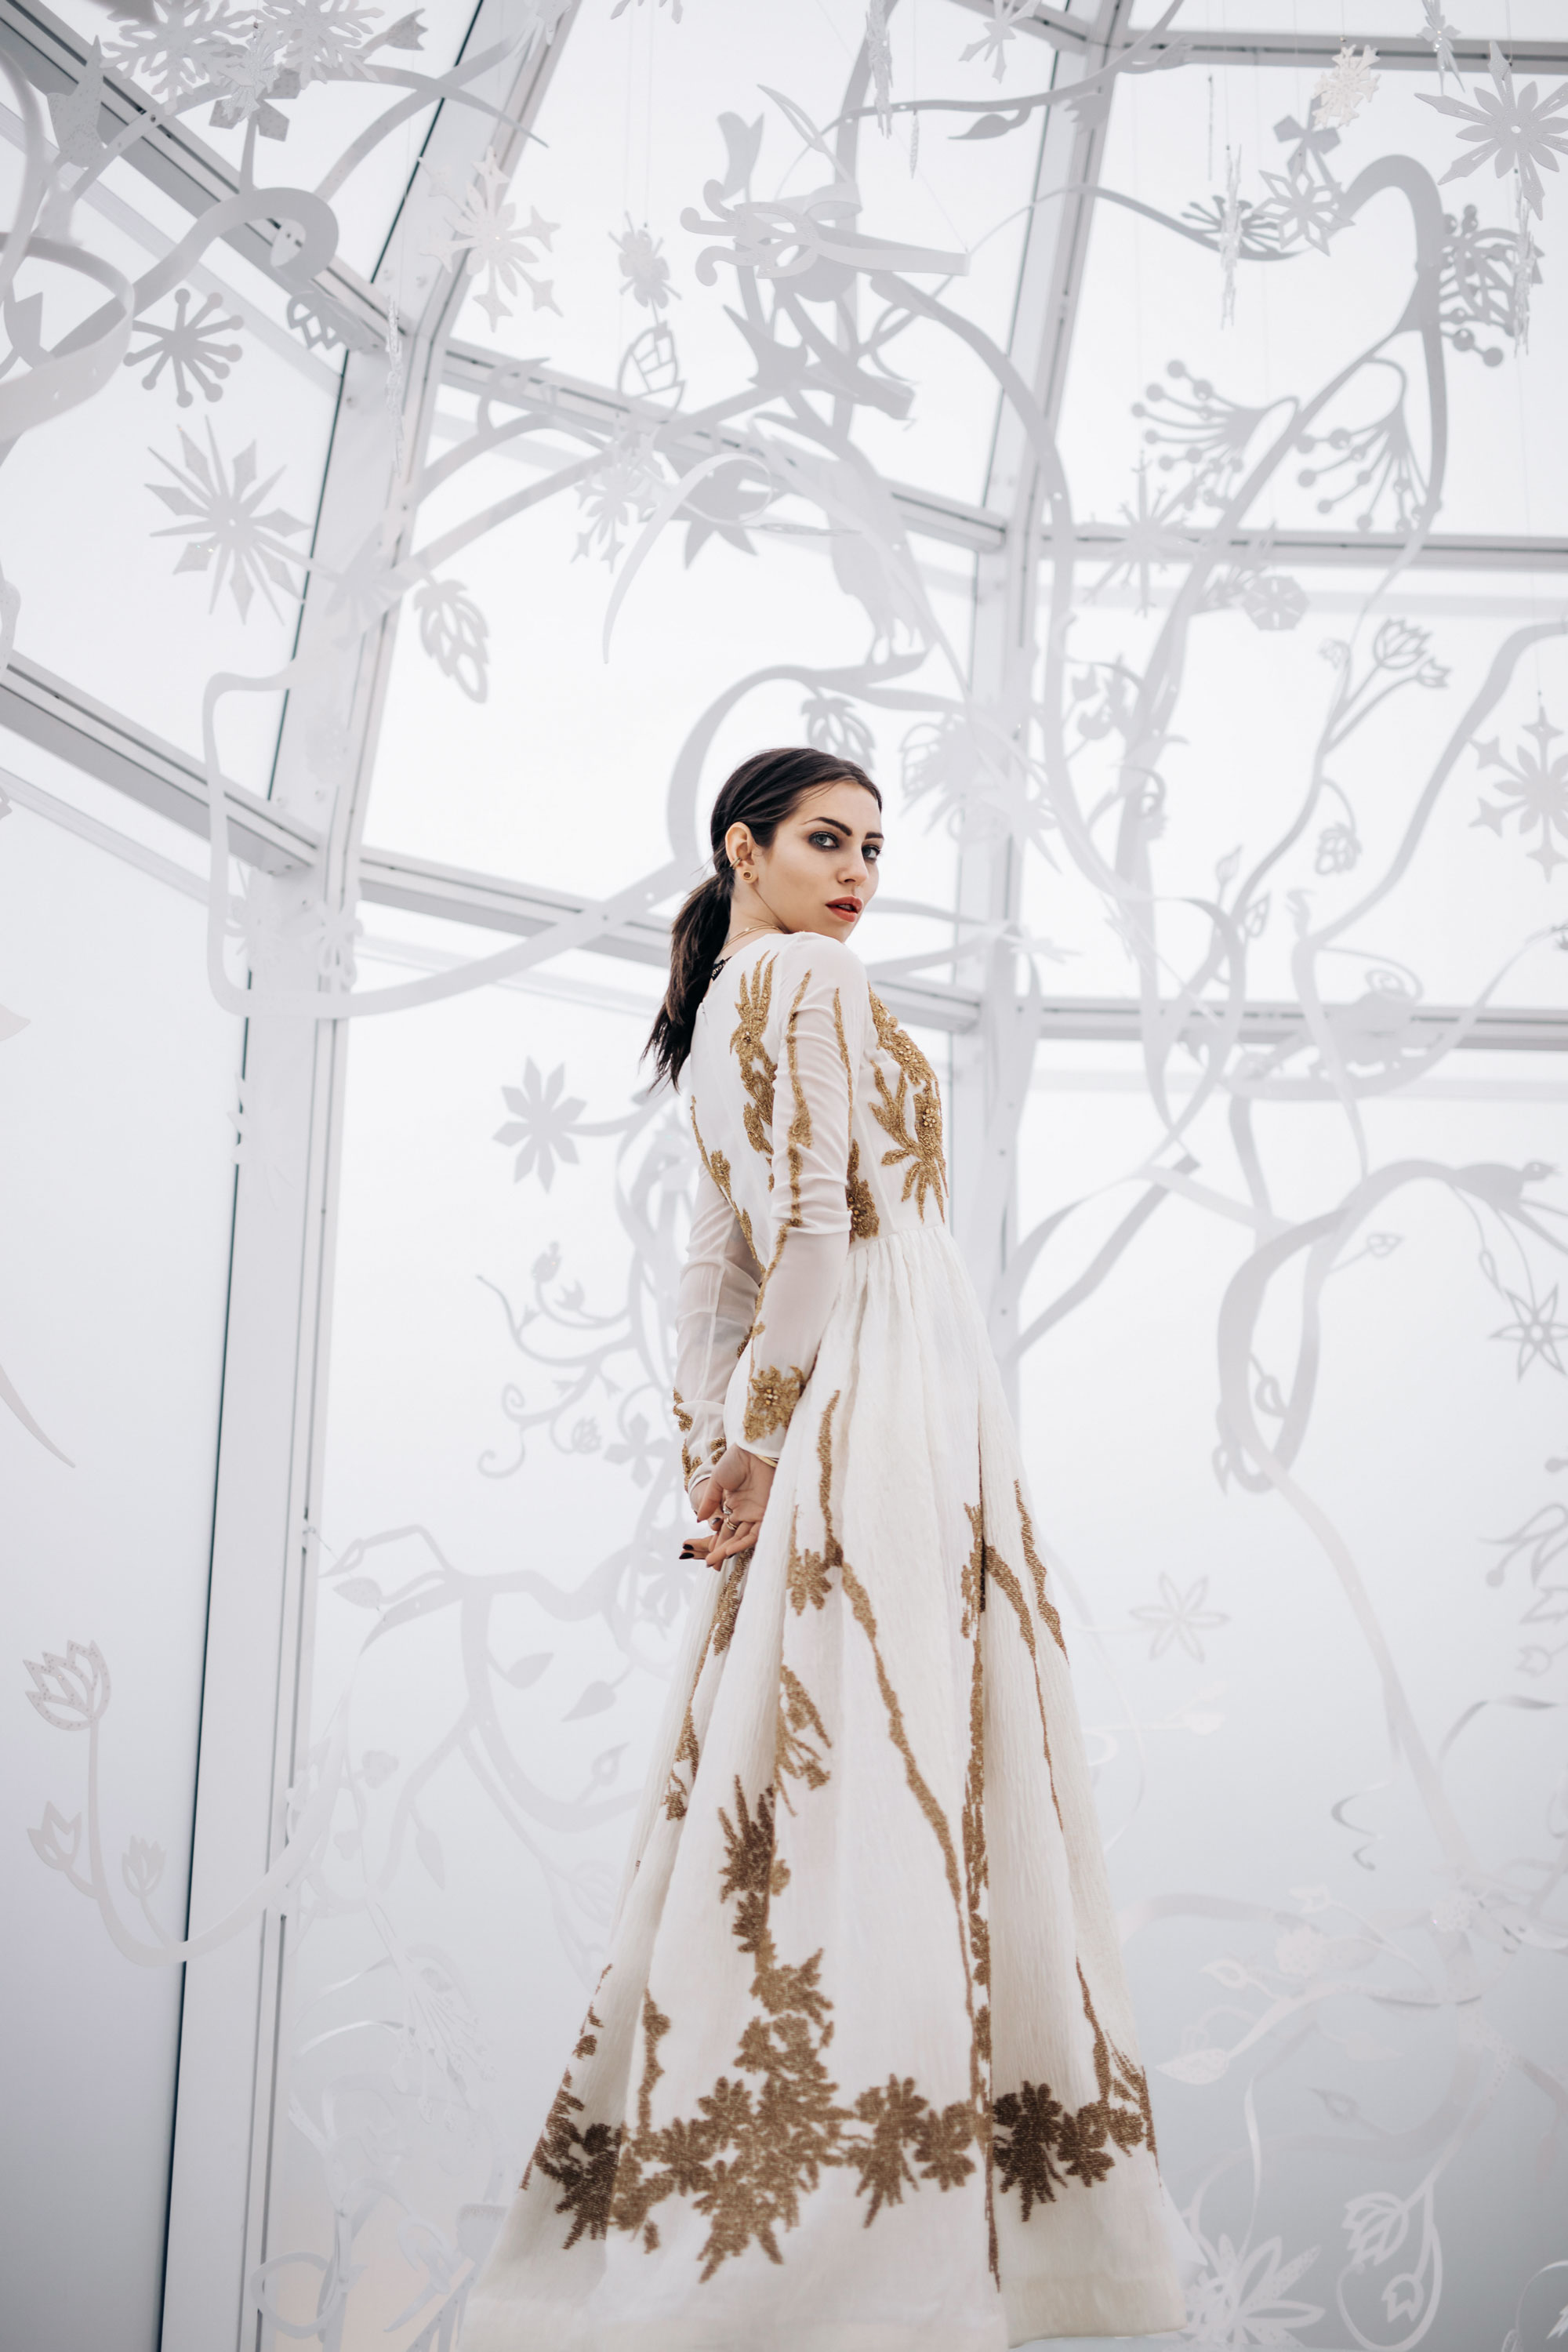 Editorial Shooting in Swarovski Crystal World in Innsbruck, Austria in evening dress from Escada | style: ice princess, snow queen, bridal fashion, bride, Elsa | fashion | inspiration | winter | christmas